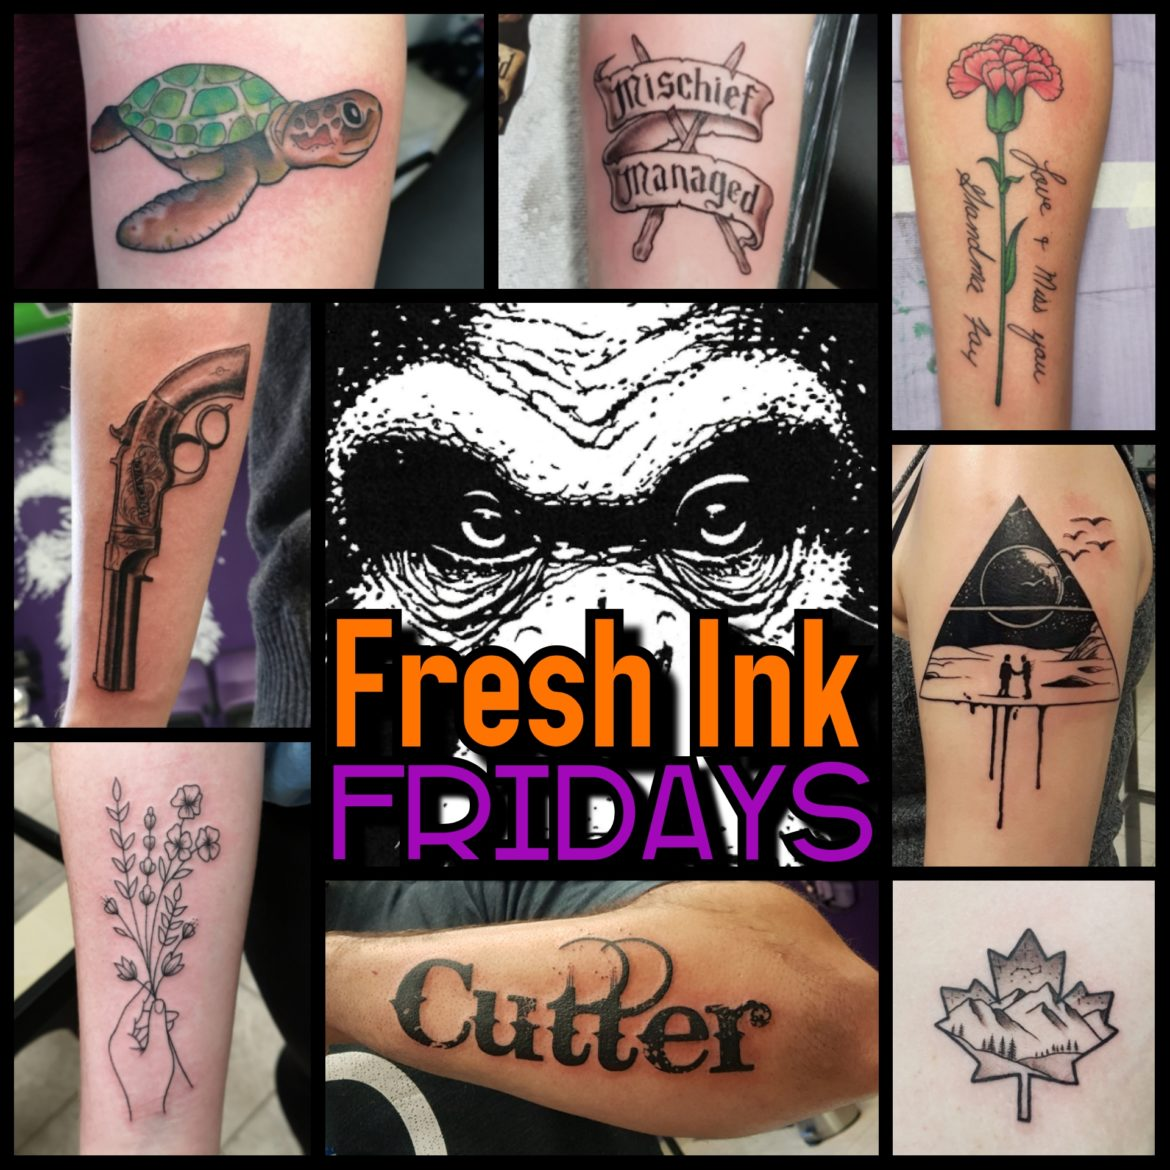 Walk-ins Every Friday